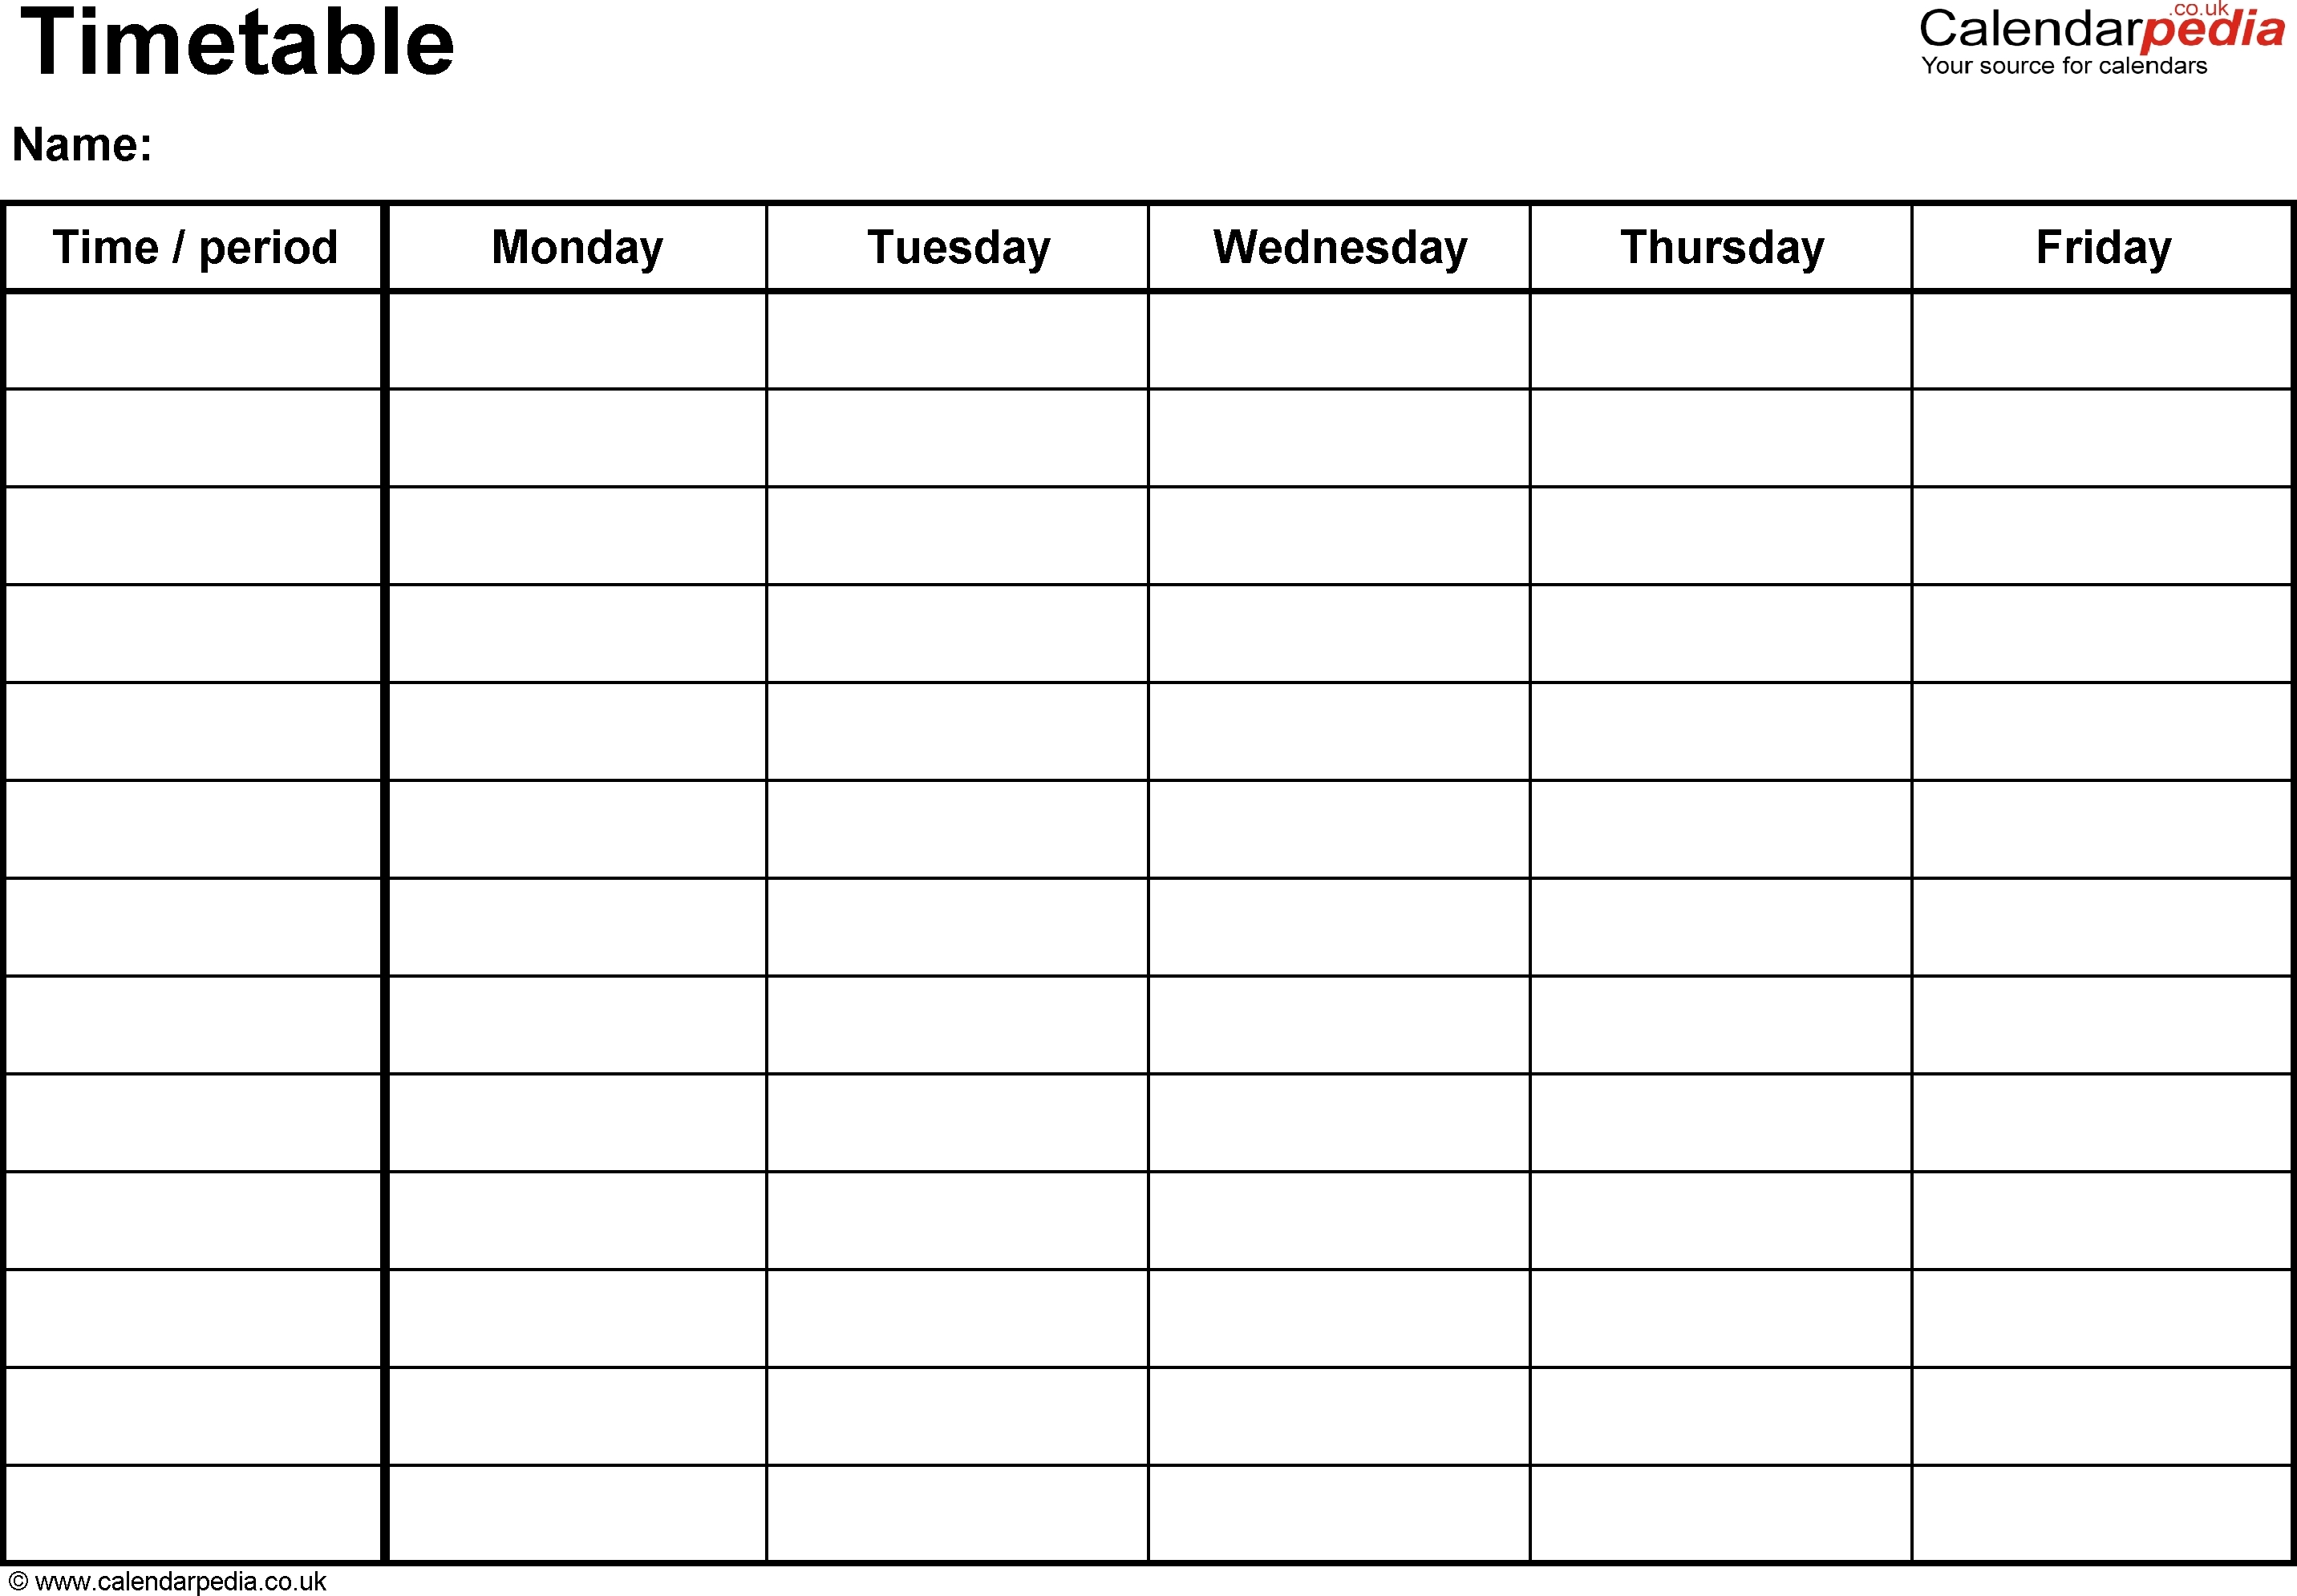 Monday To Friday Schedule Printable | Holidays Calendar Template  Monday Through Friday Schedule Printable